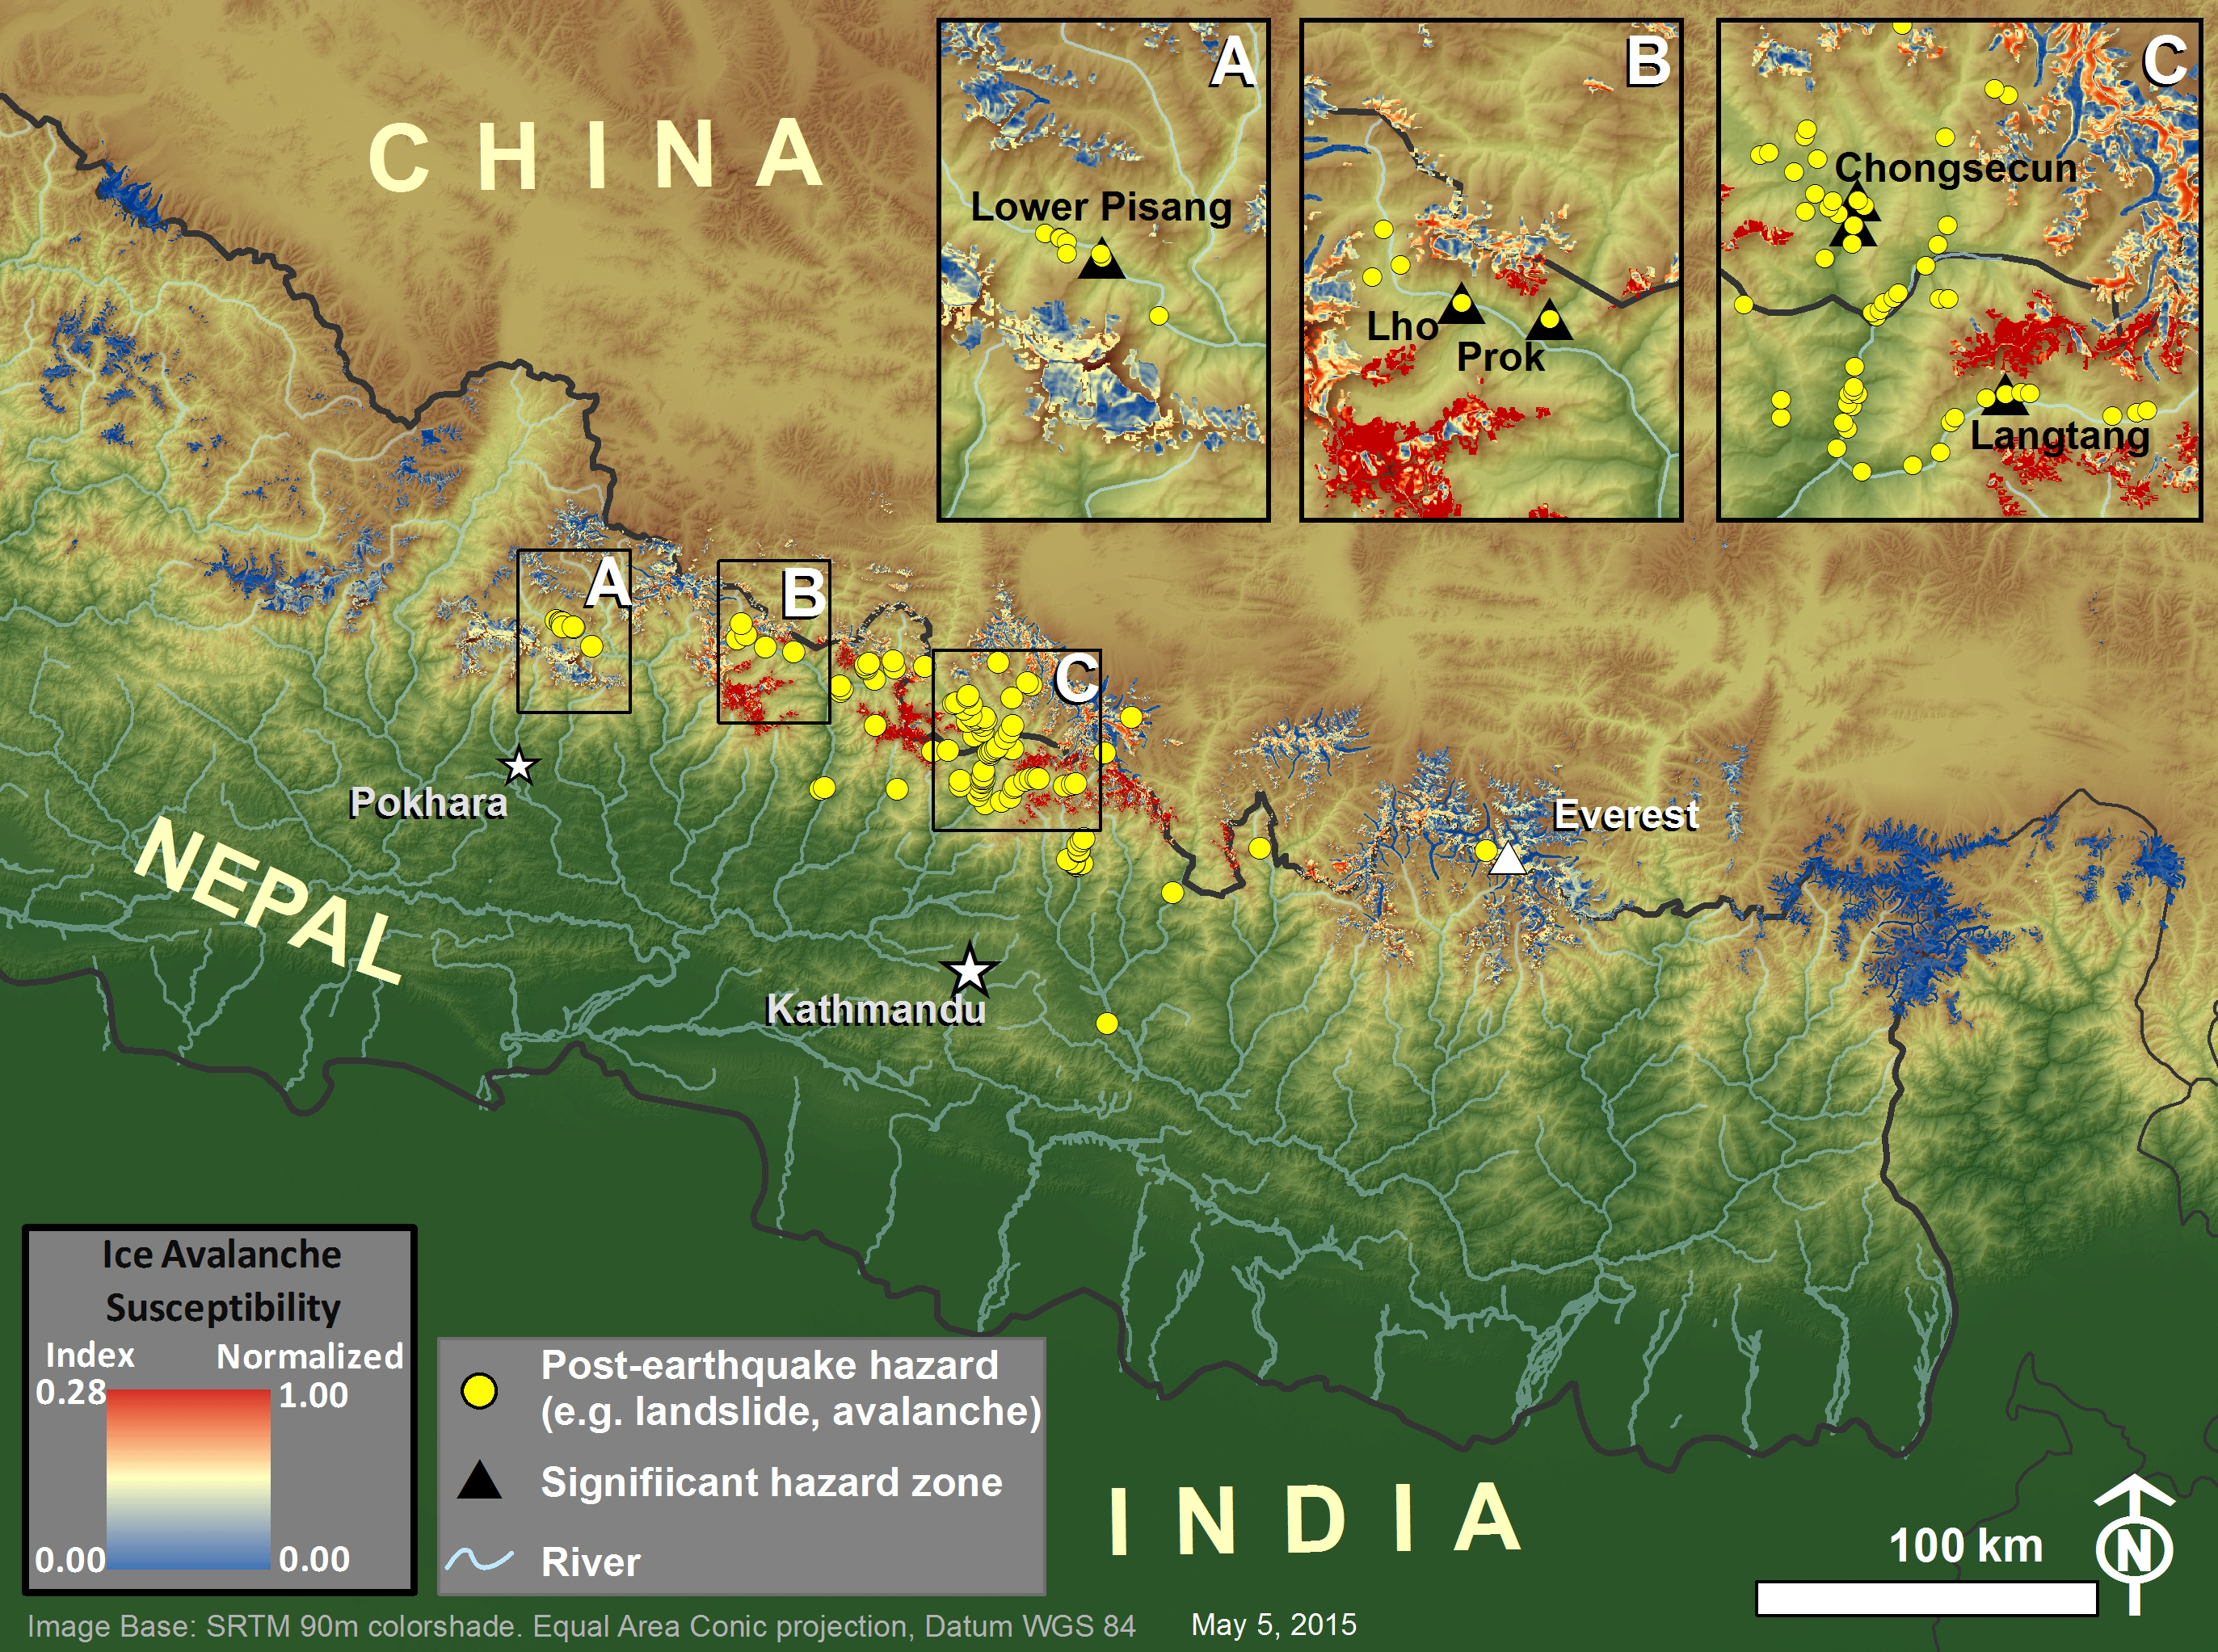 Gorkha earthquake induced ice avalanche susceptibility map nasa nepal diagram gumiabroncs Choice Image